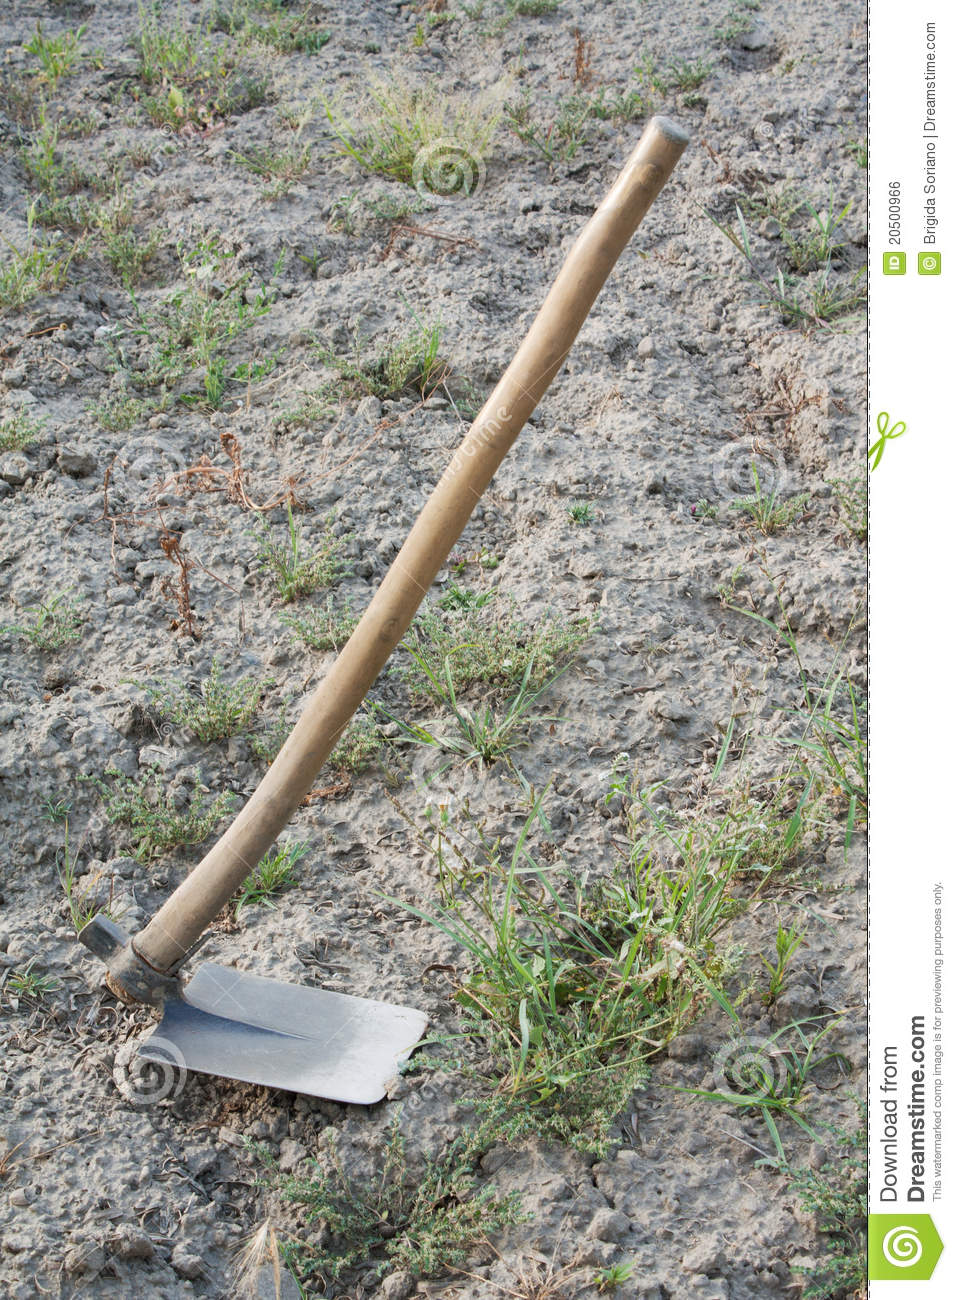 Hoe a garden tool stock photo image of blade garden for Picture of a garden hoe